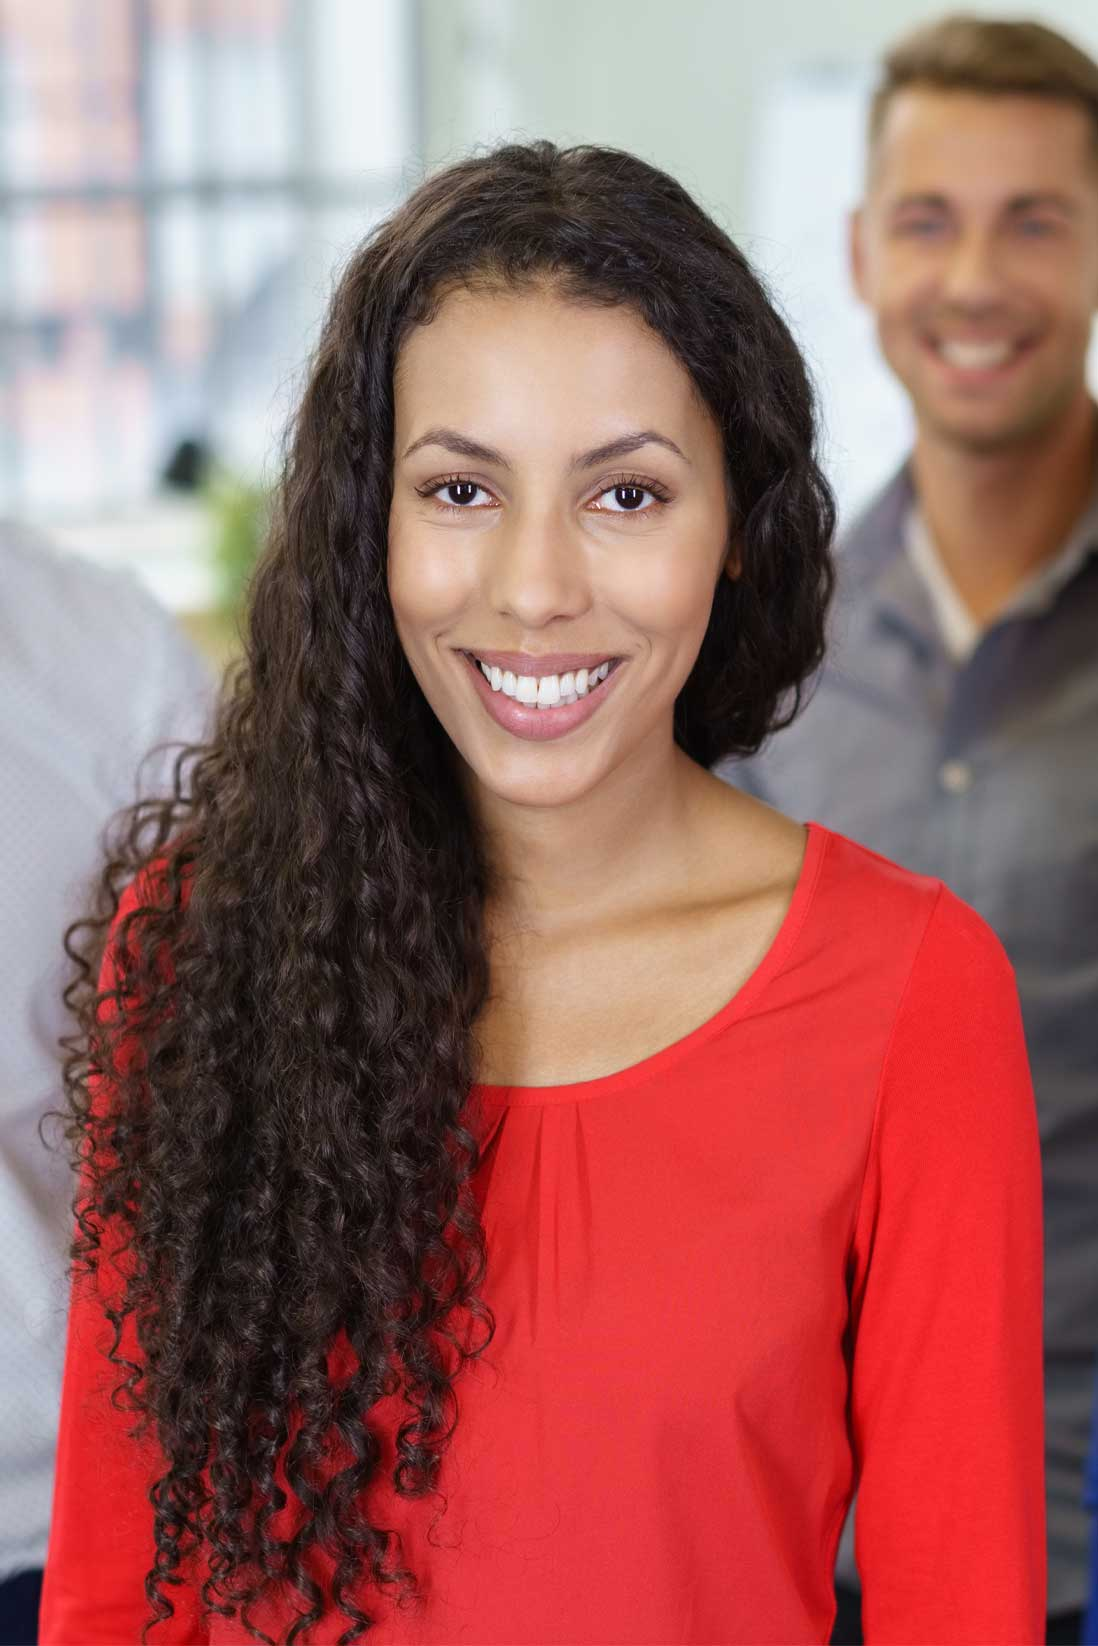 Image of smiling, happy female client with man in the background